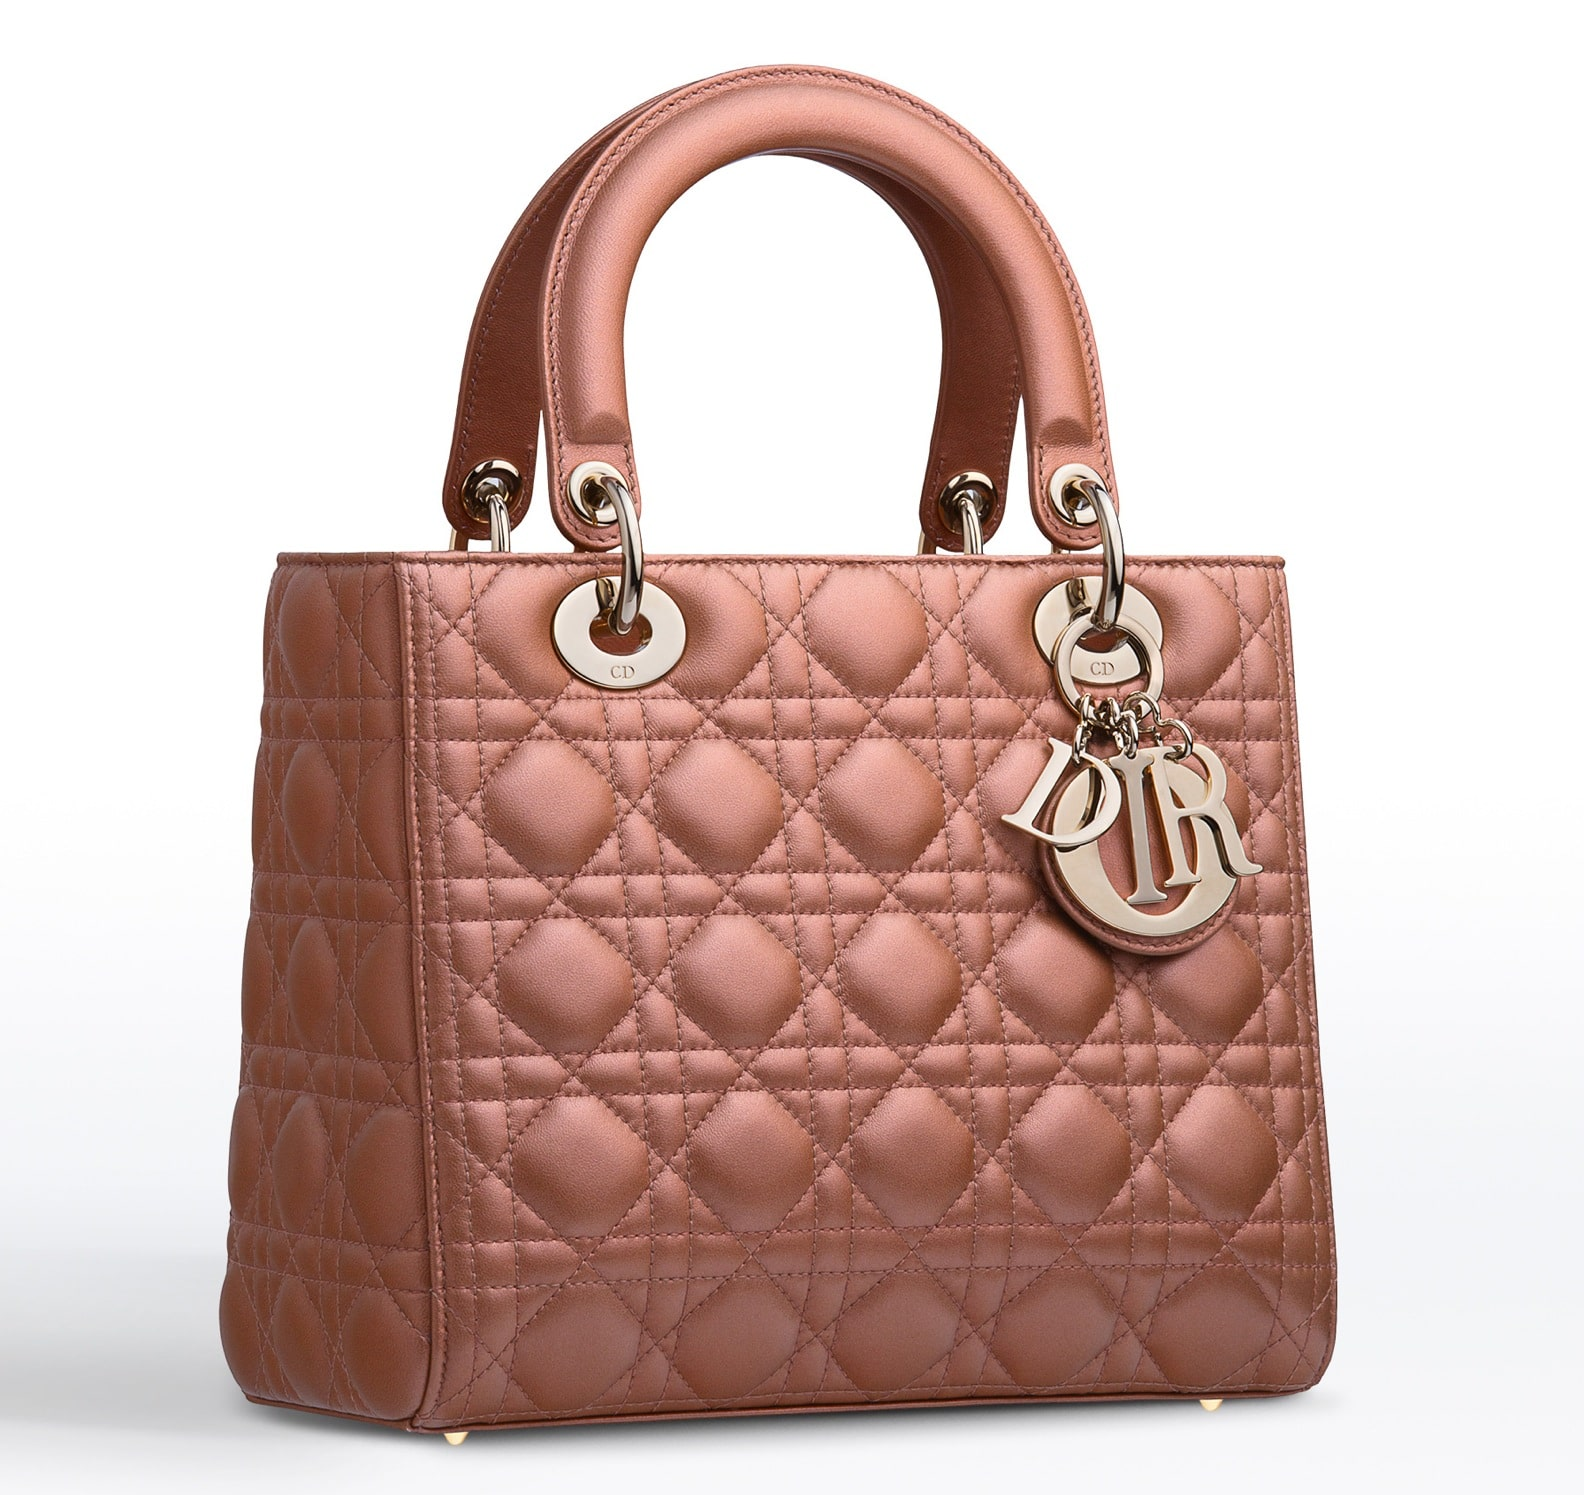 b95e2d7e996 Lady Dior Bag Reference Guide | Spotted Fashion